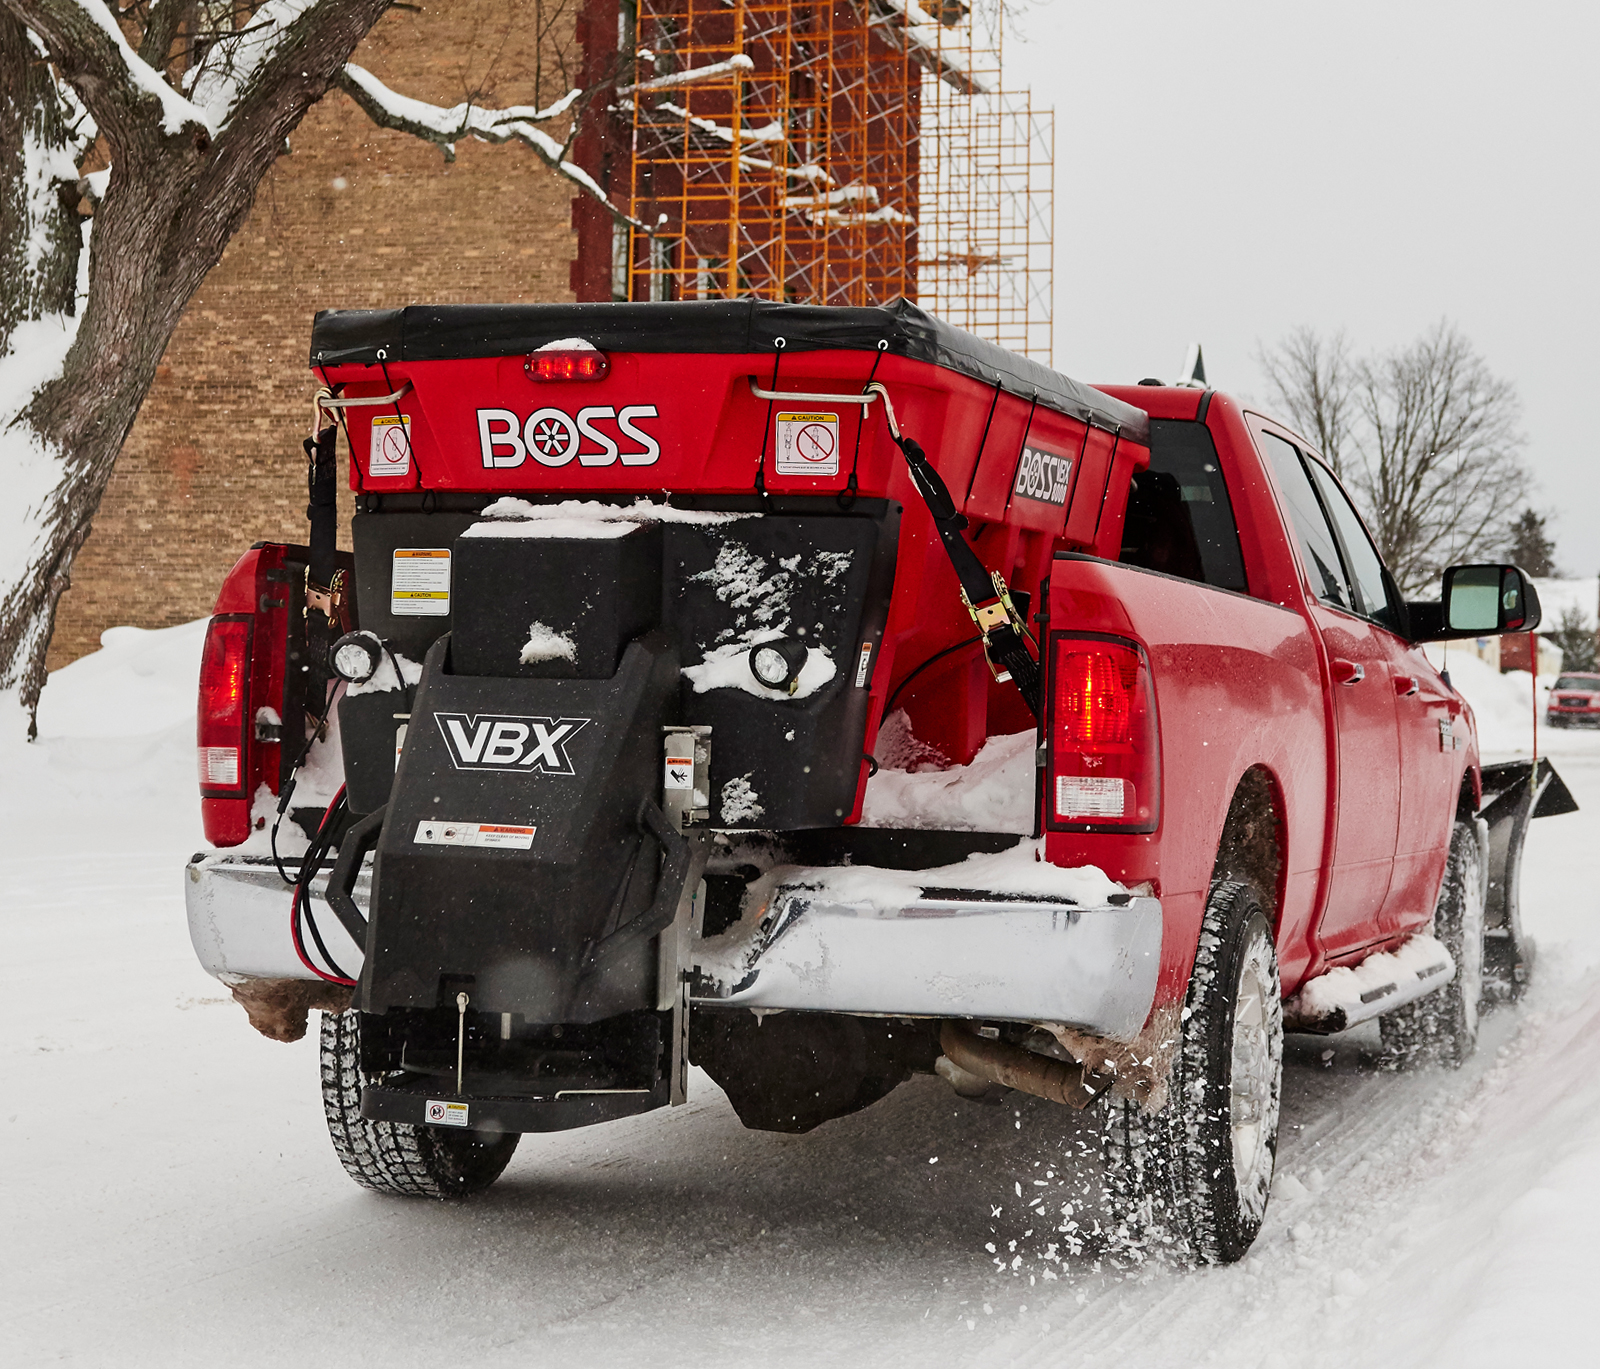 VBXSpreaders.ashx?mw=700&mh=599&hash=1559B985428FF7AD2D91F18A77CDE35D89A3C237 boss snowplow vbx spreaders Boss Plow Wiring Harness Diagram at mifinder.co